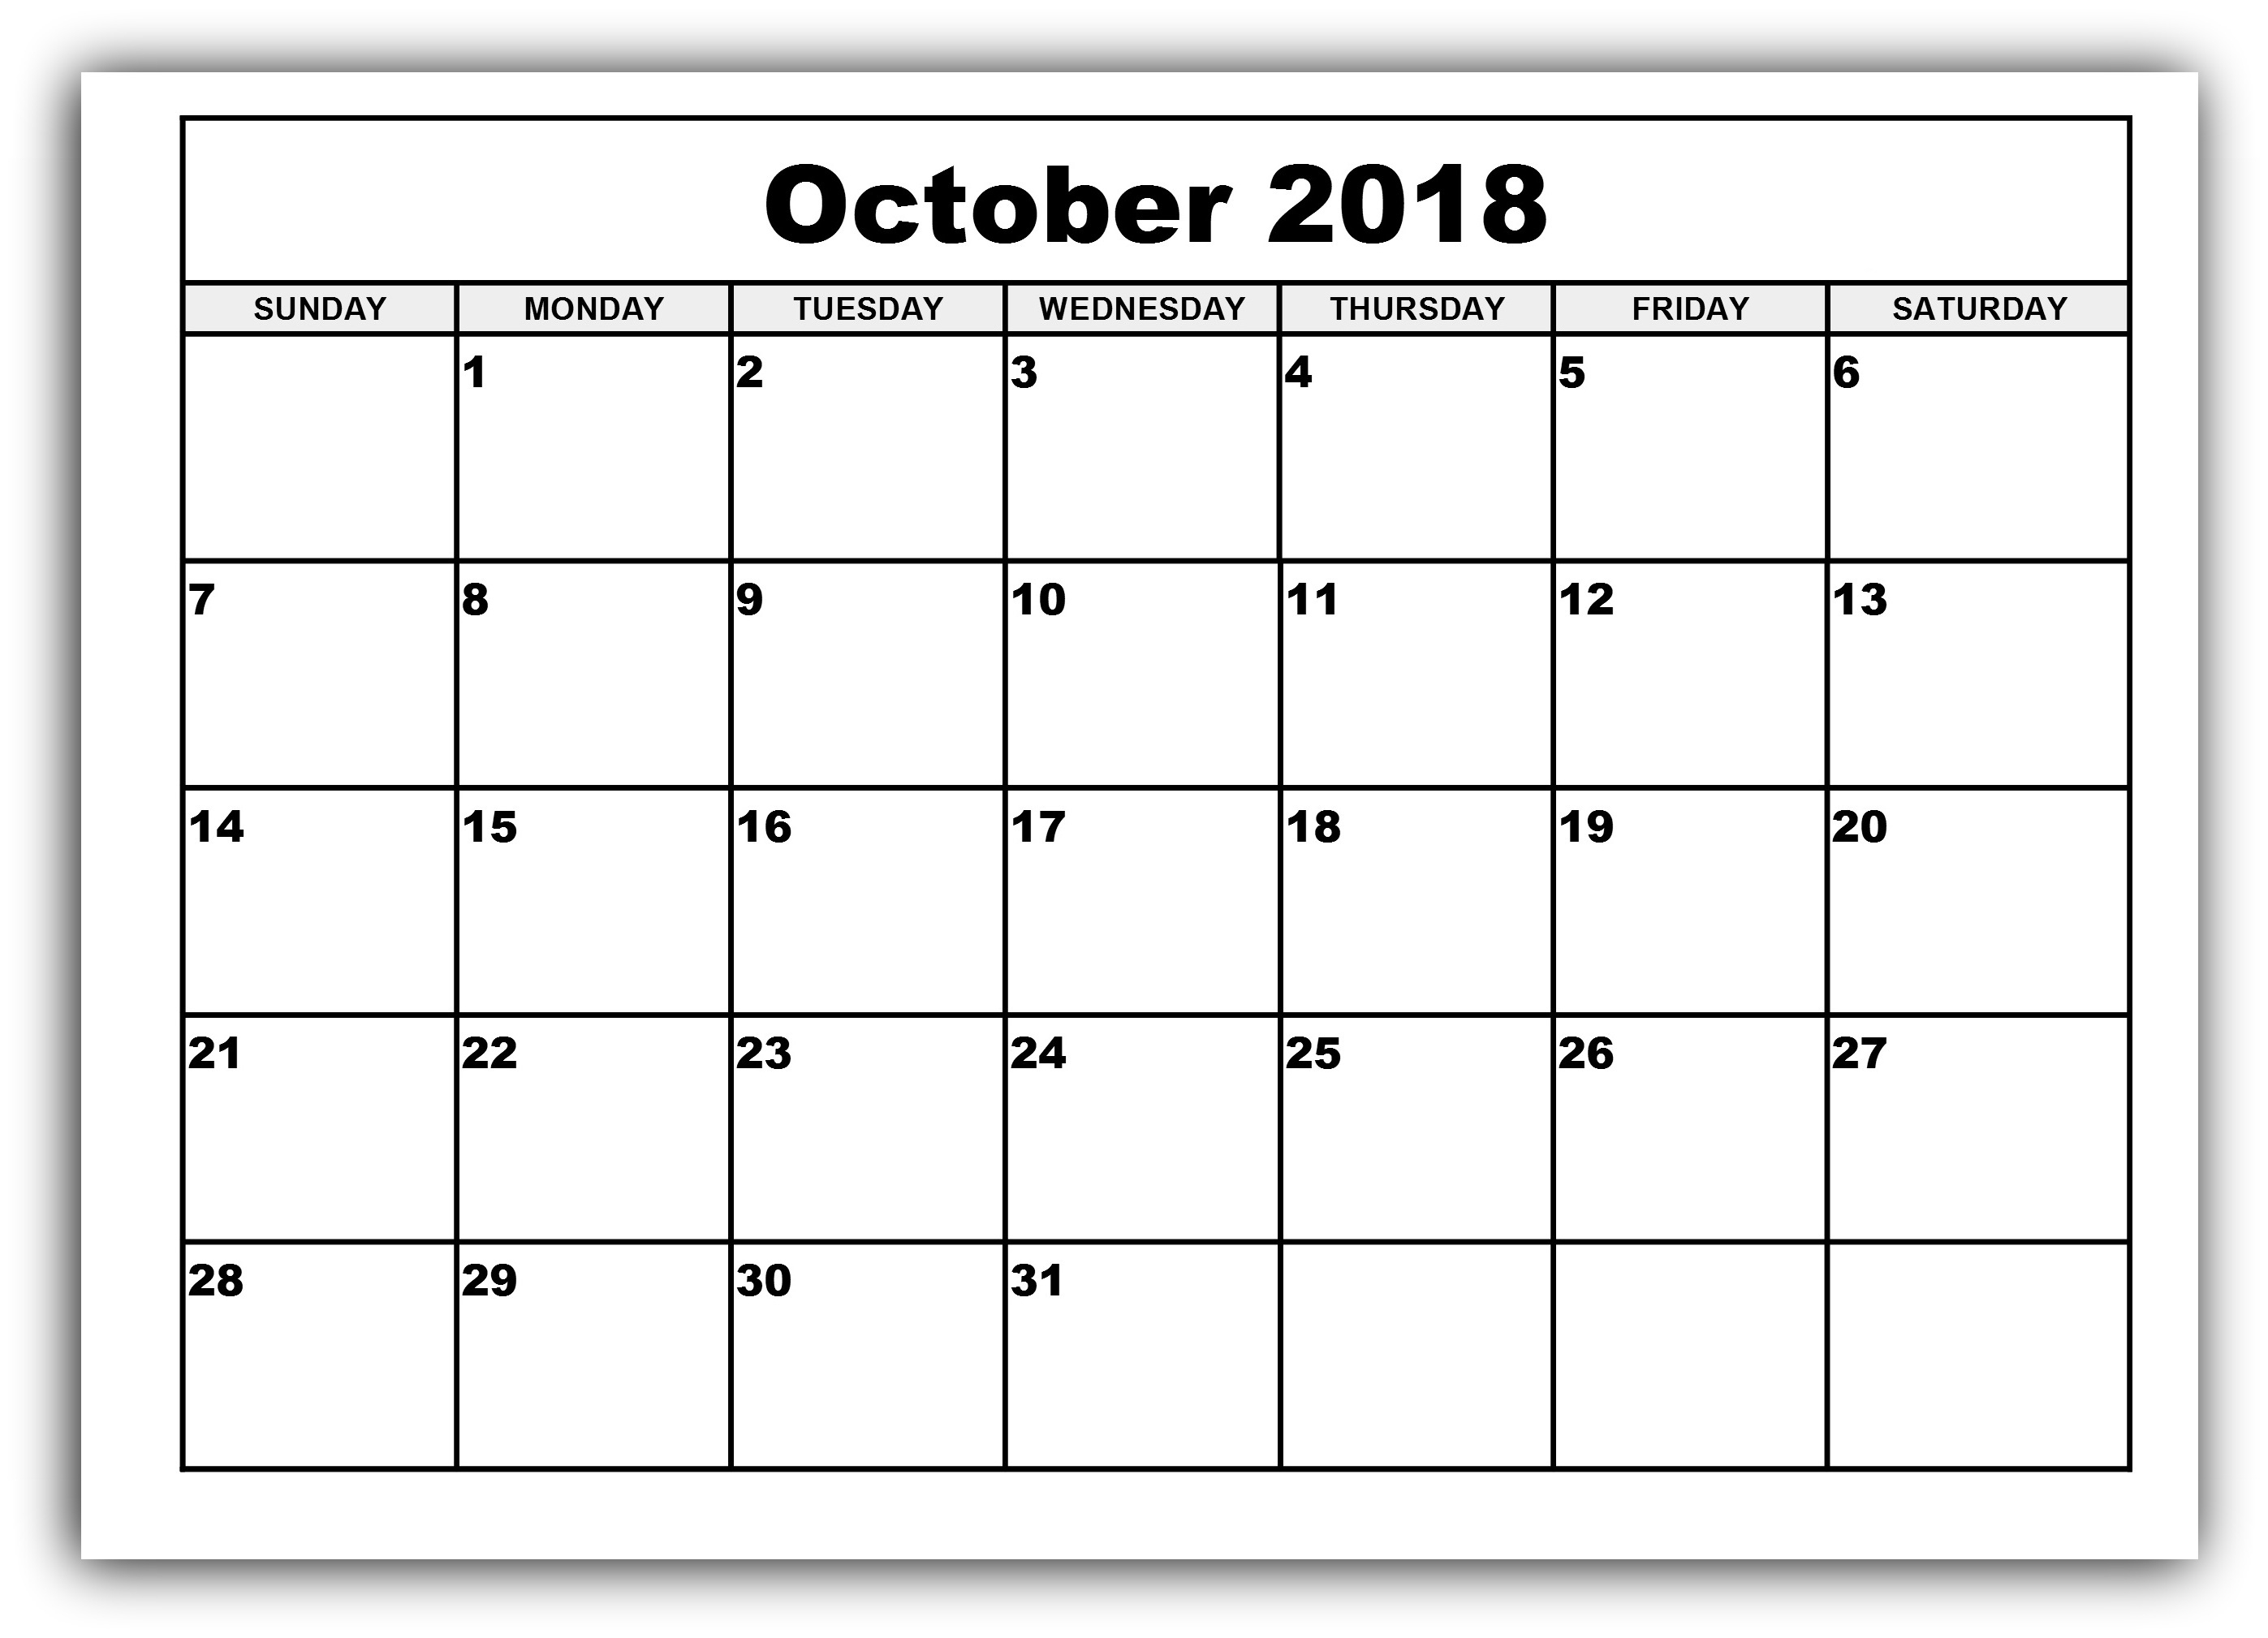 get october 2018 blank printable calendar templates april 2018 October 2018 Calendar Printable Template erdferdf